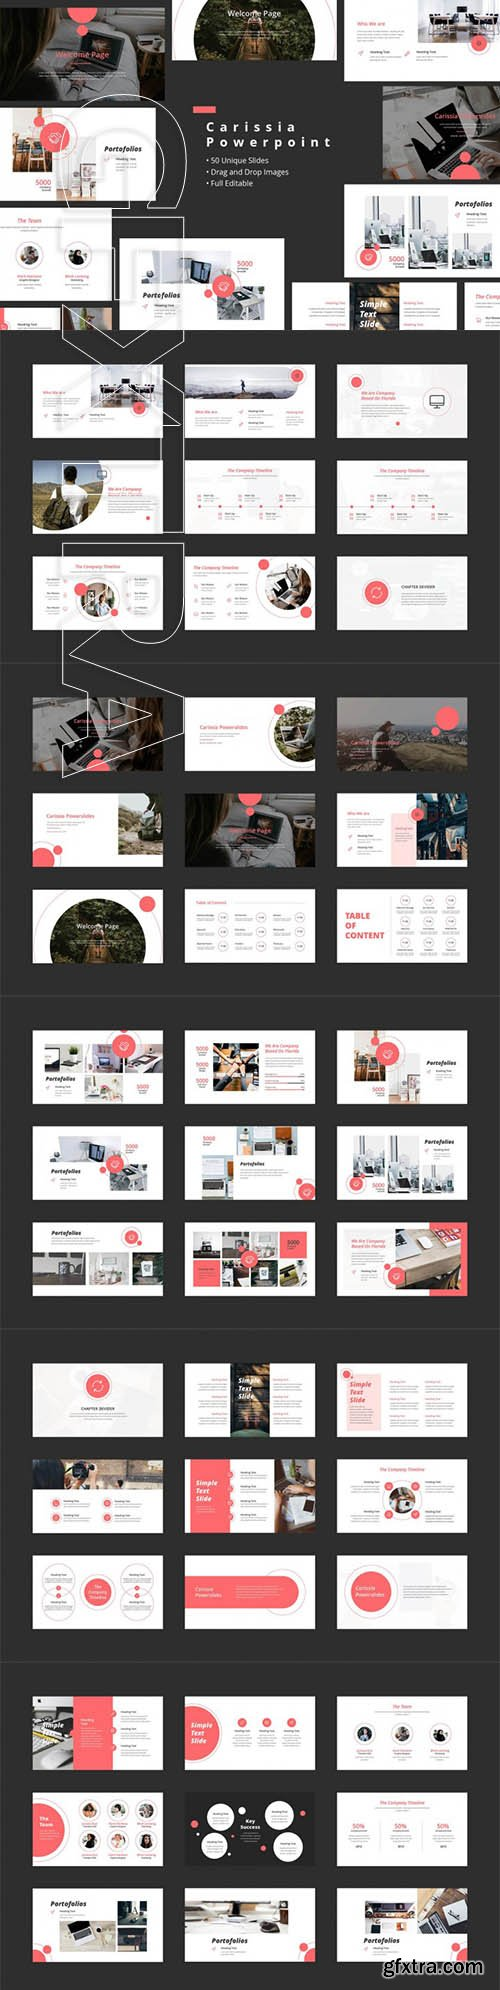 Carissia Powerpoint Templates